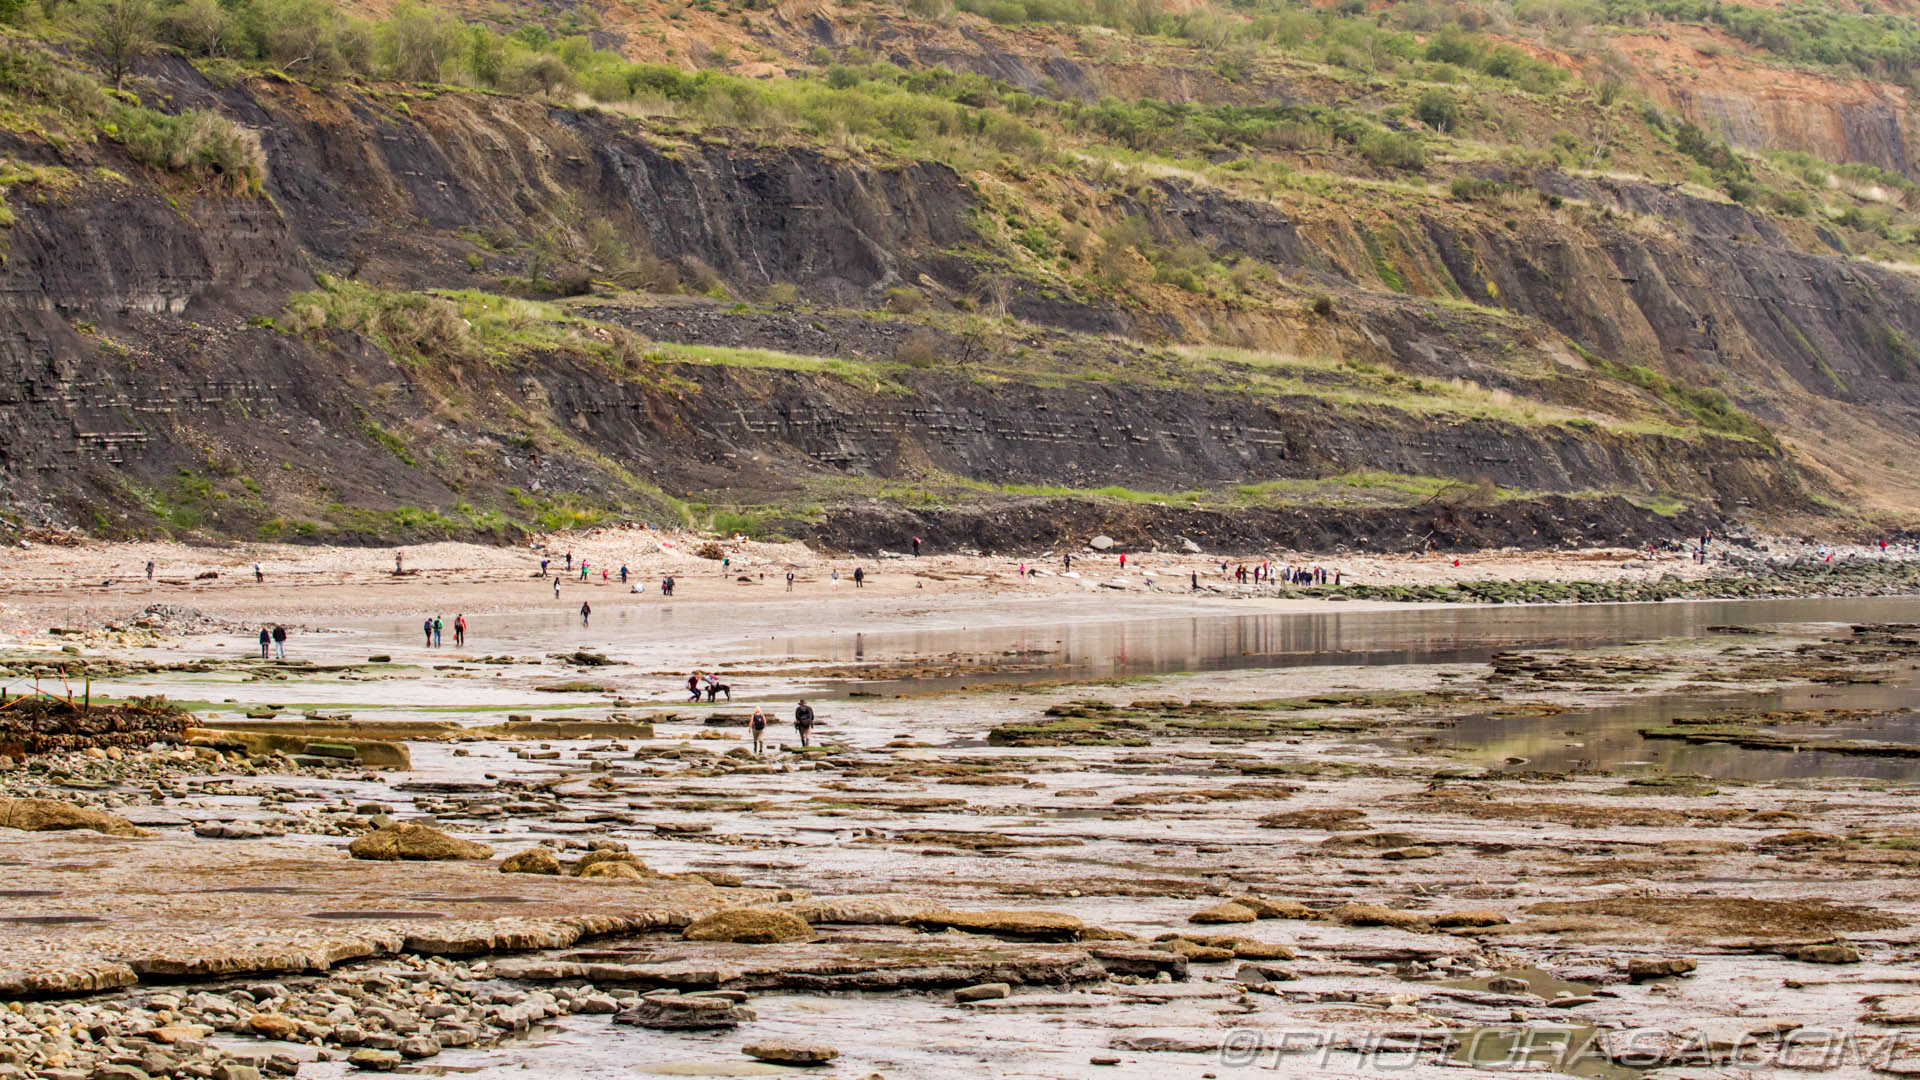 http://photorasa.com/jurassic-coast-lyme-regis/people-looking-for-fossils-at-the-jurassic-cliffs-of-dorset/